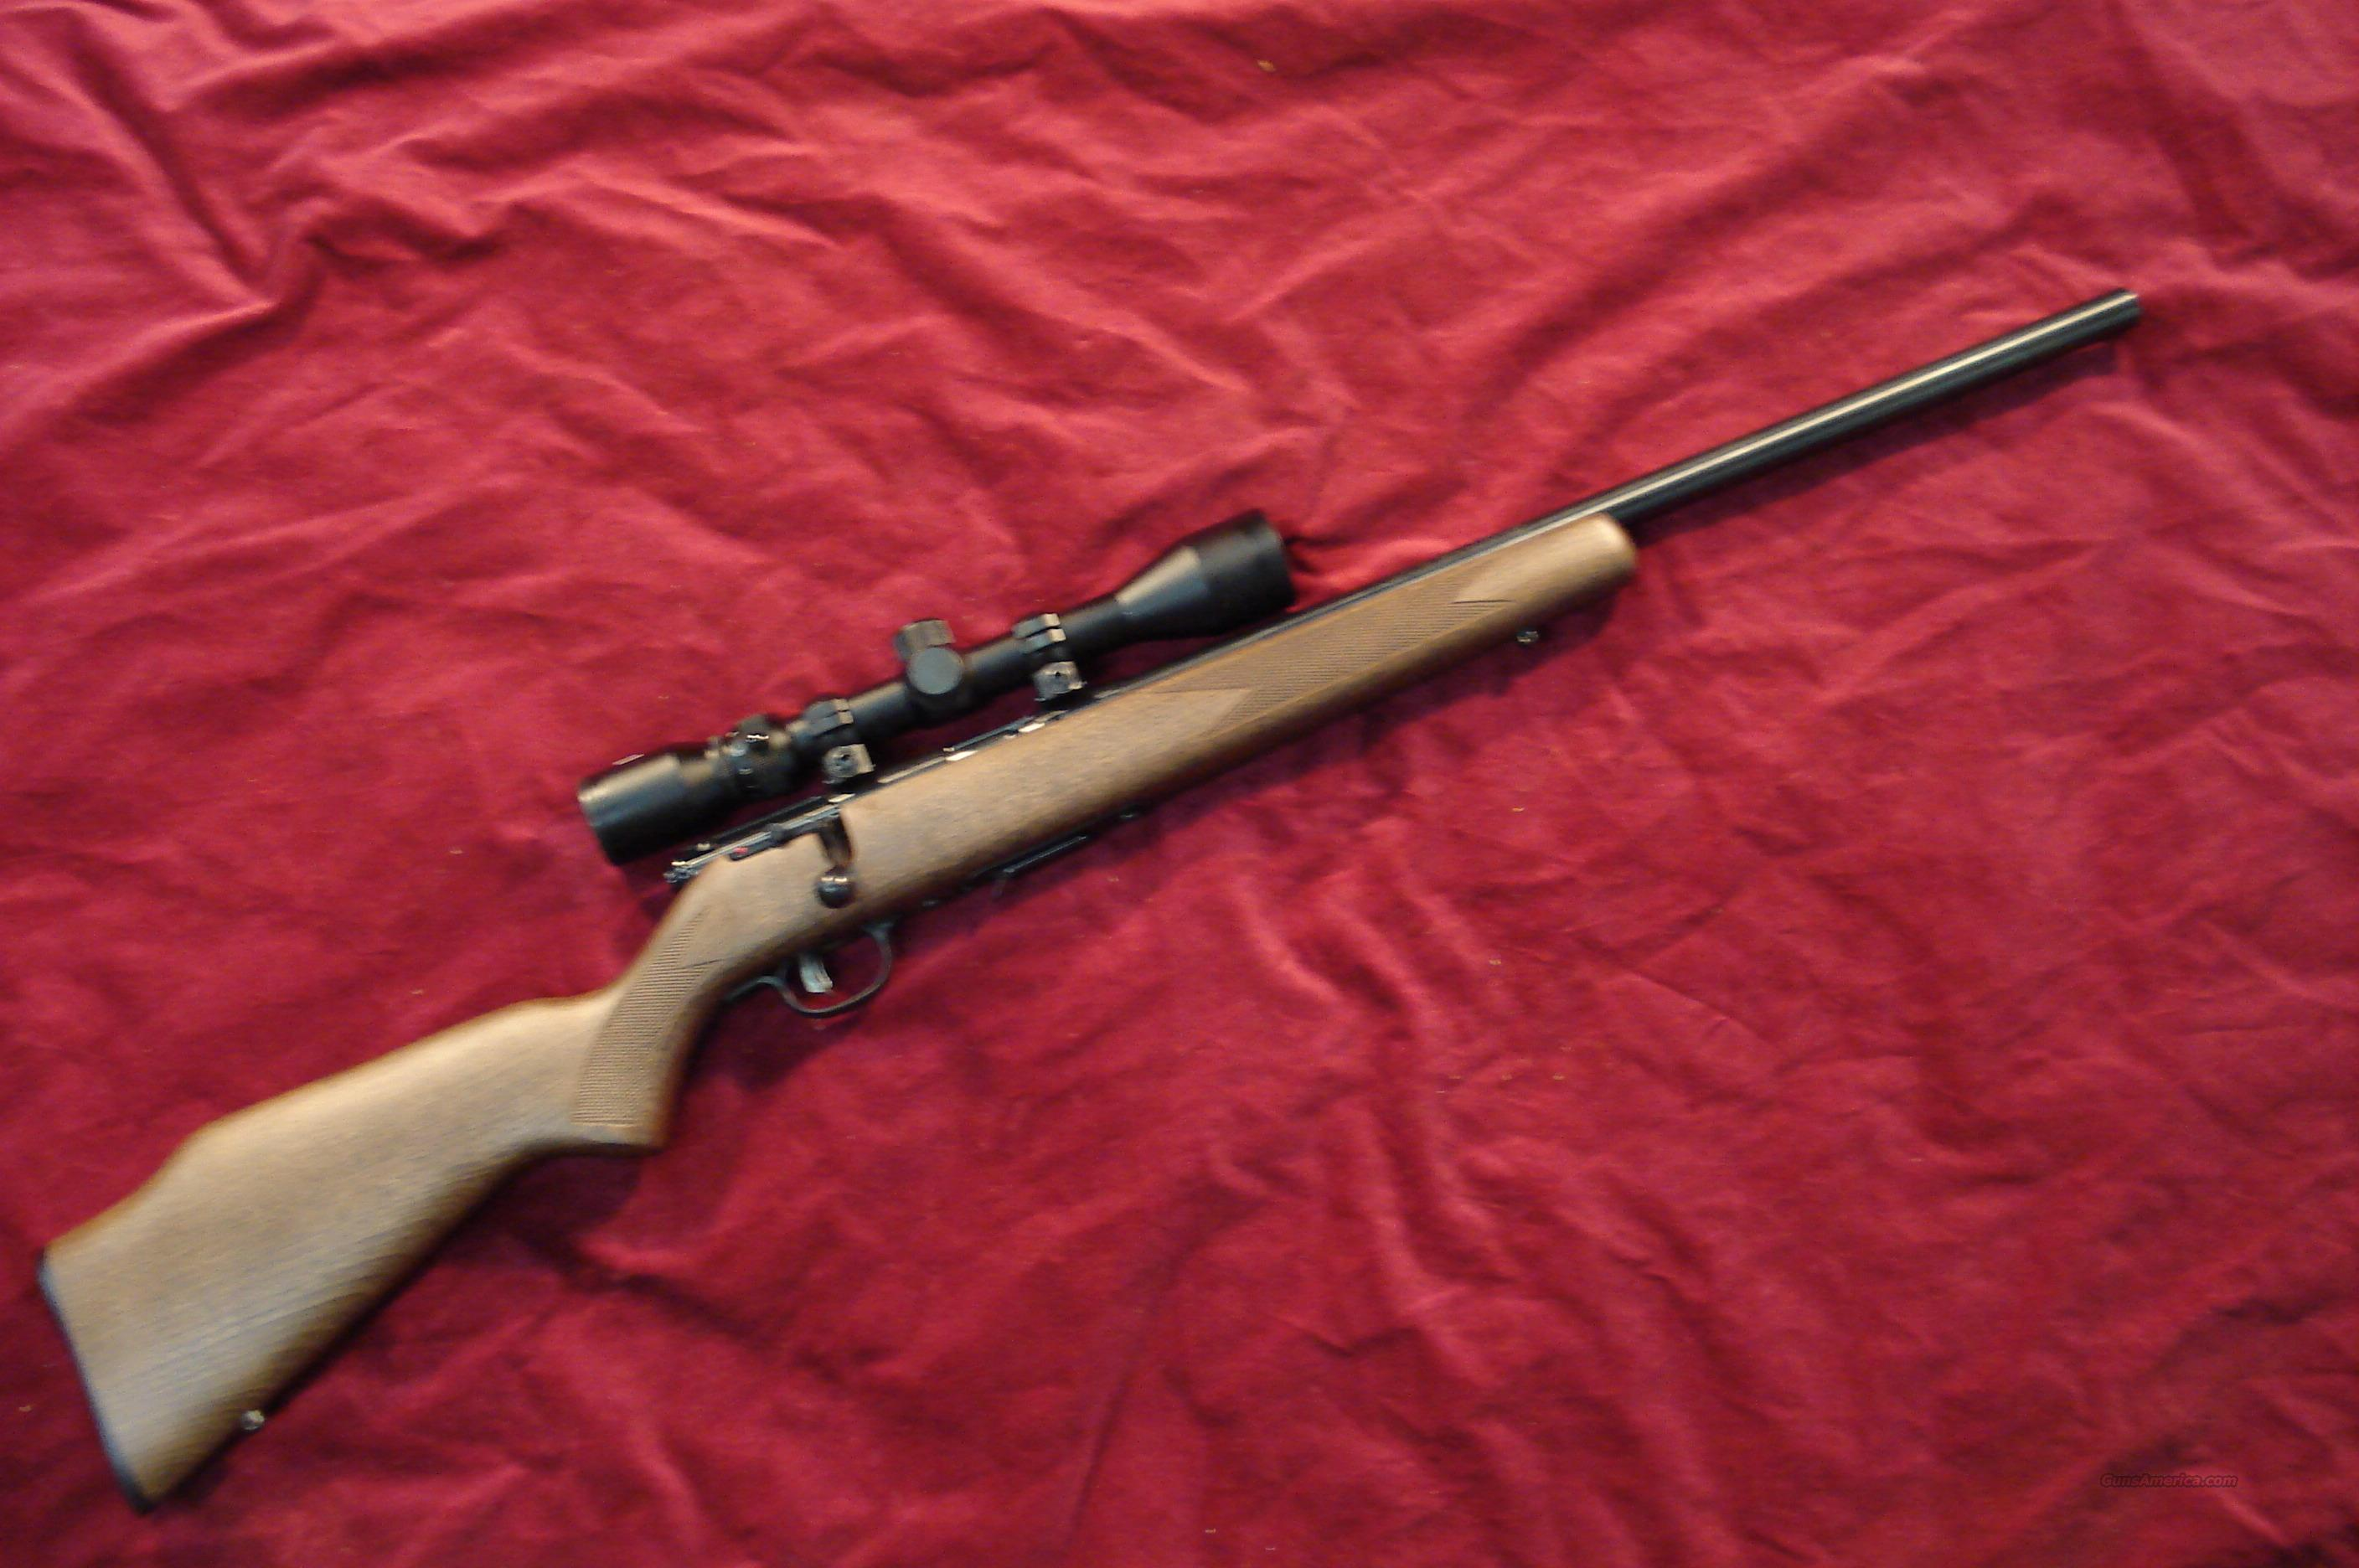 The exchange available now savage 93r17 gv w scope package 17 hmr new 96222 sciox Images